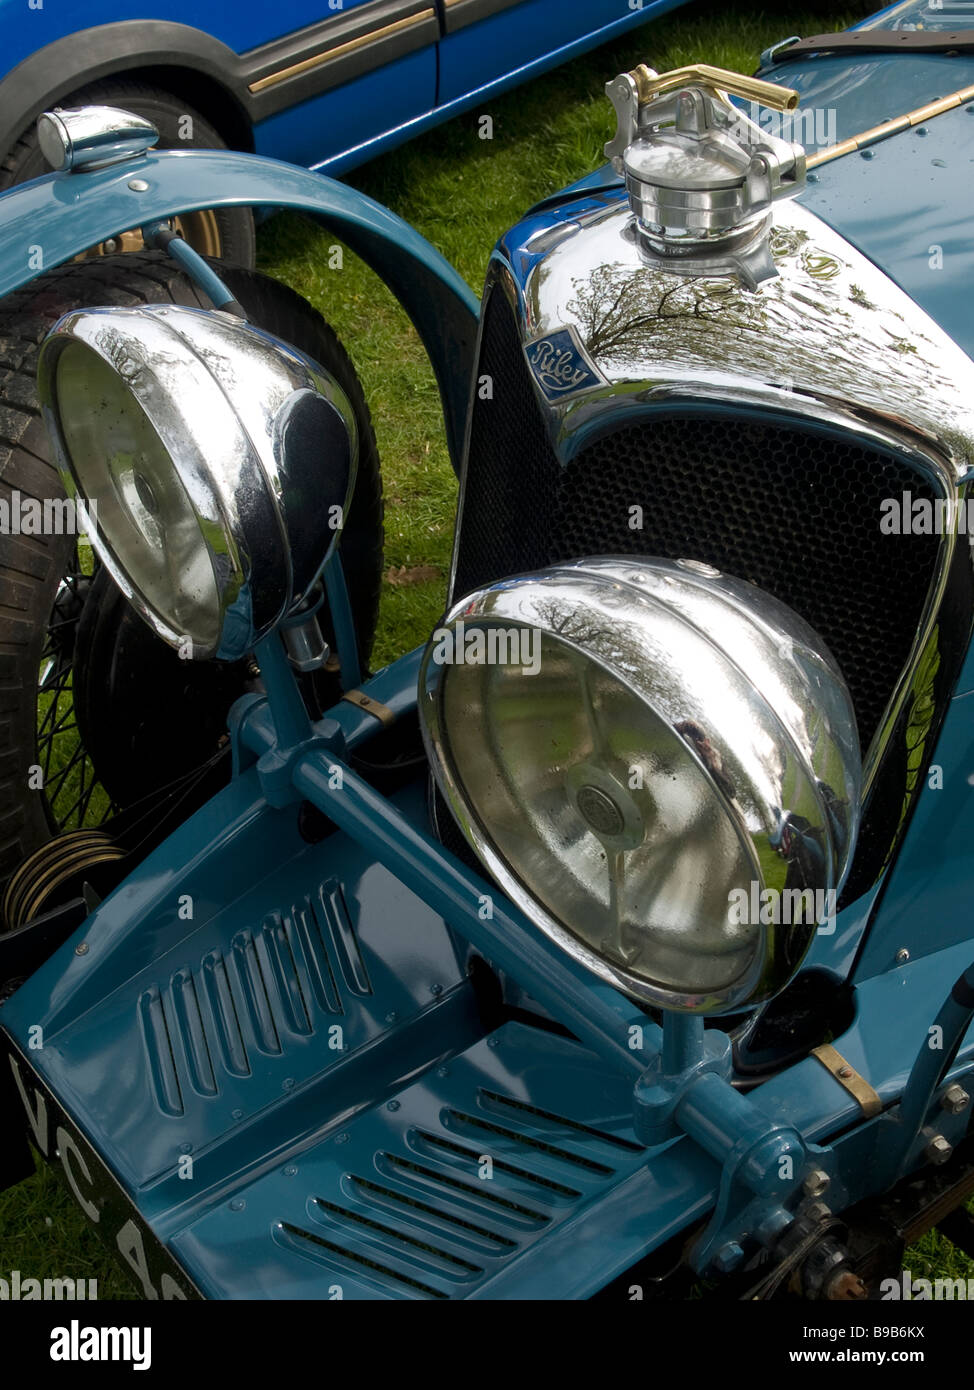 radiator dumb irons and headlamp detail of a vintage Riley car - Stock Image